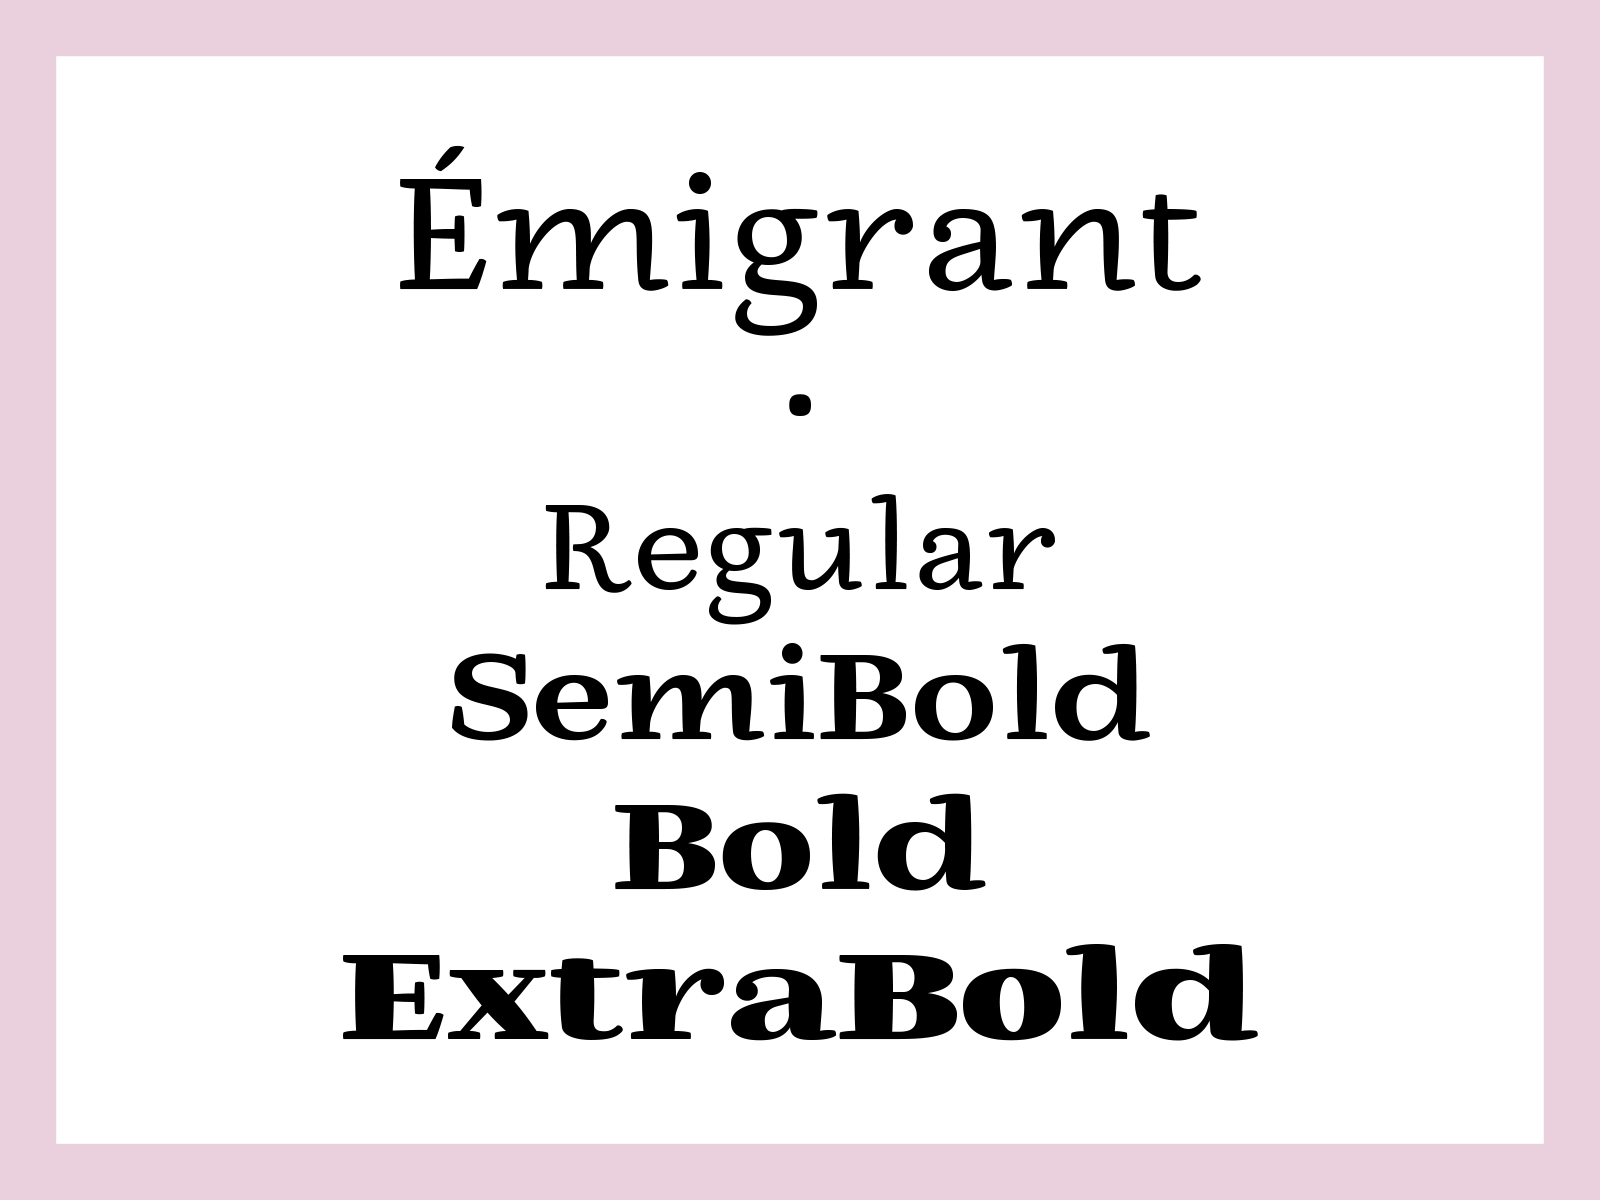 Francisco-Torres-Emigrantserif-6